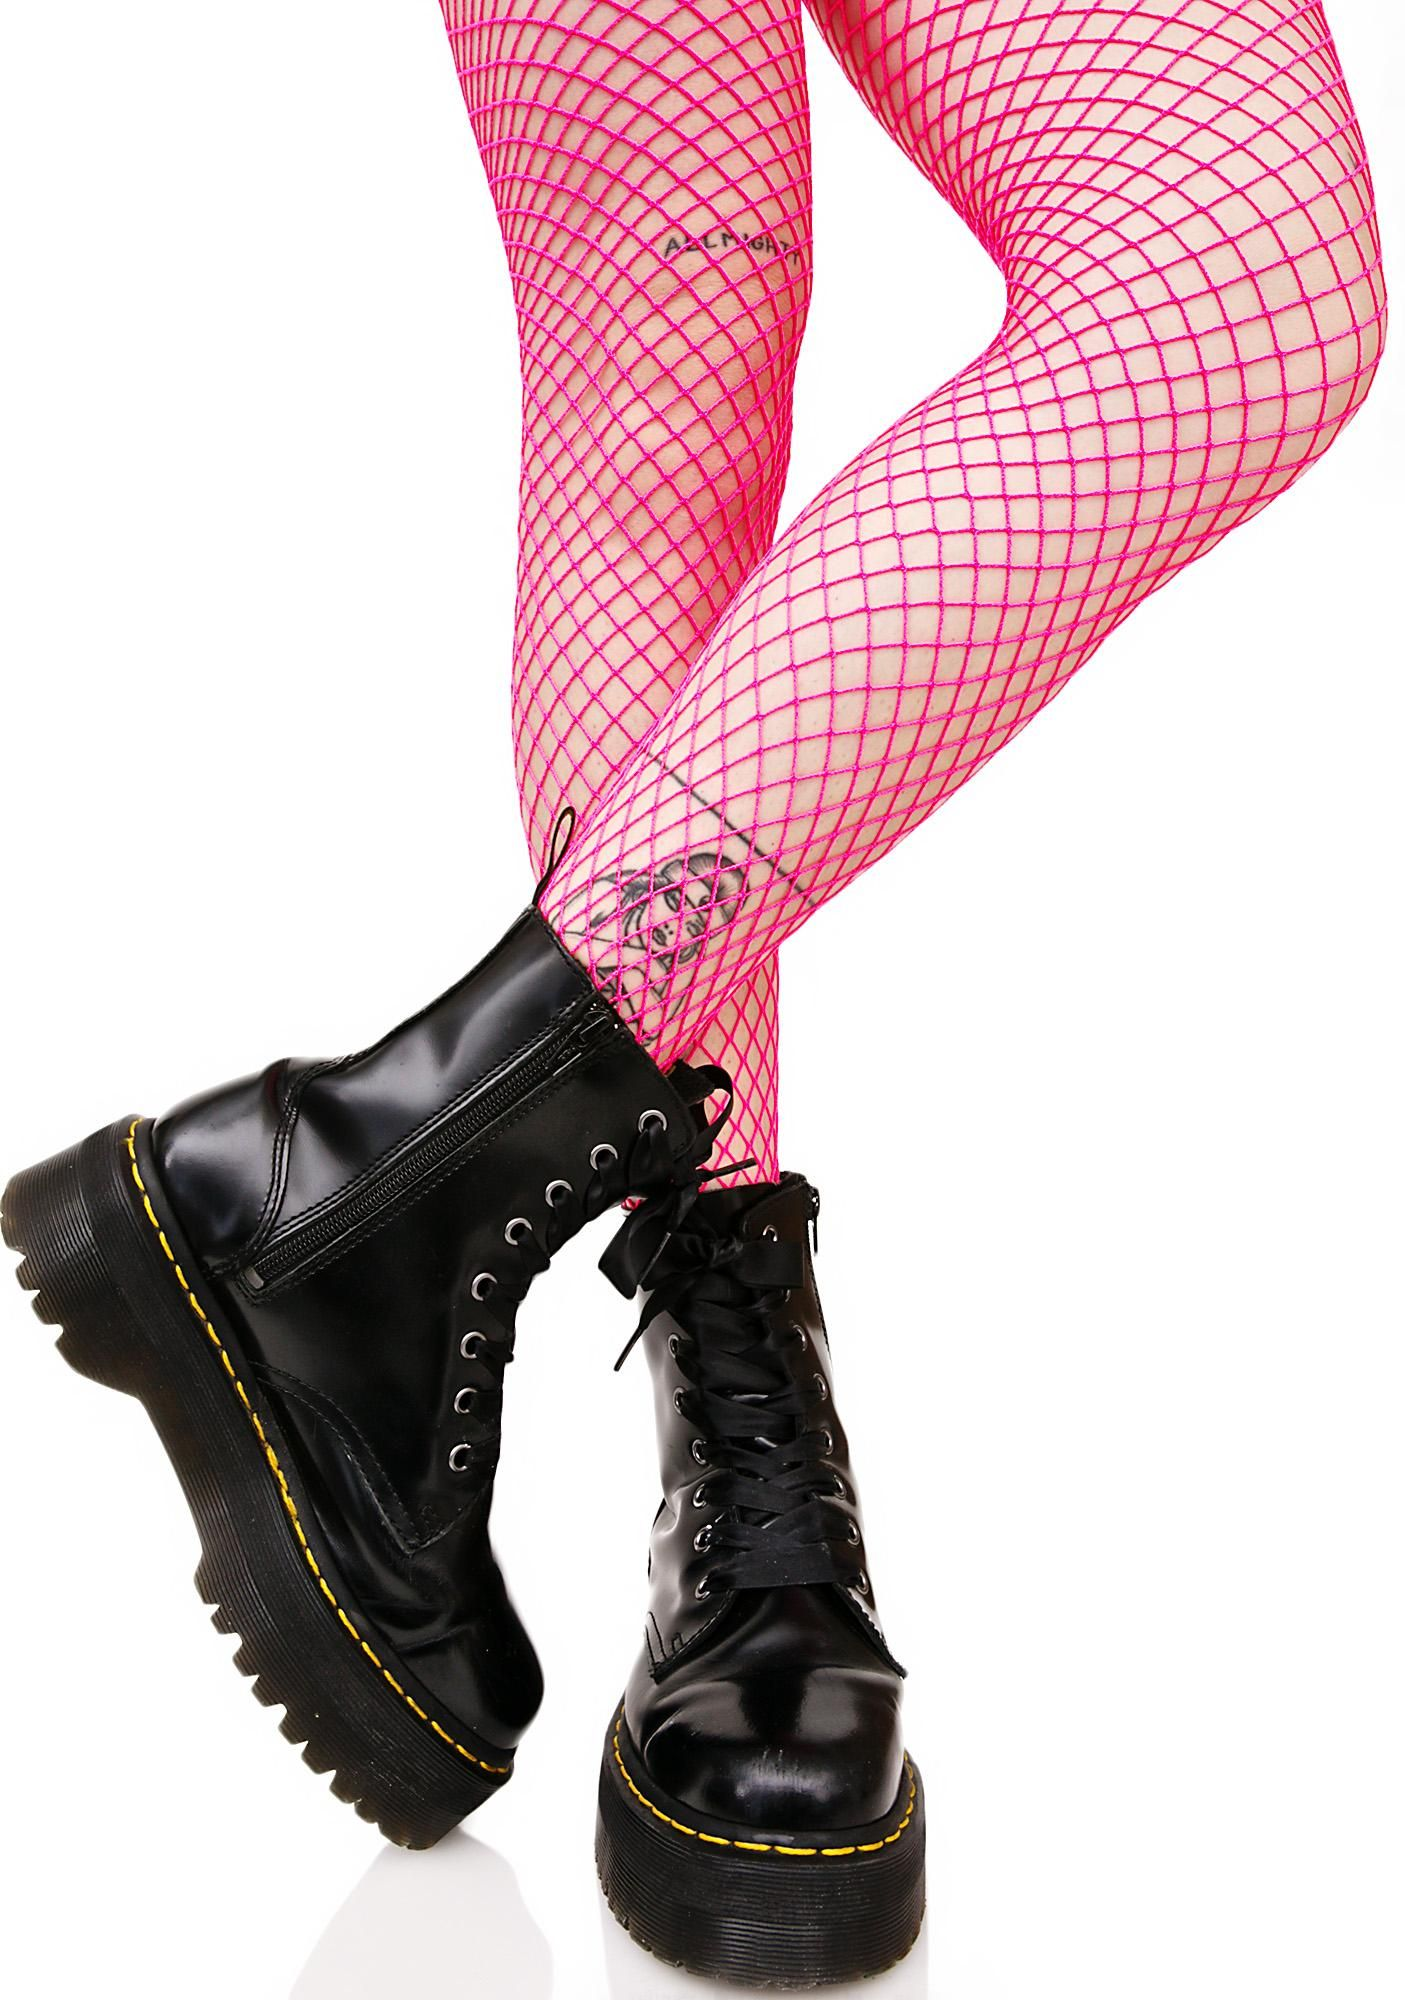 Bold Move Fishnet Tights cuz yew ain't no boring b*tch, bb. Stand out from the crowd in these neon pink fishnet tights that feature a stretchy nylon construction that hugz yer curvez.